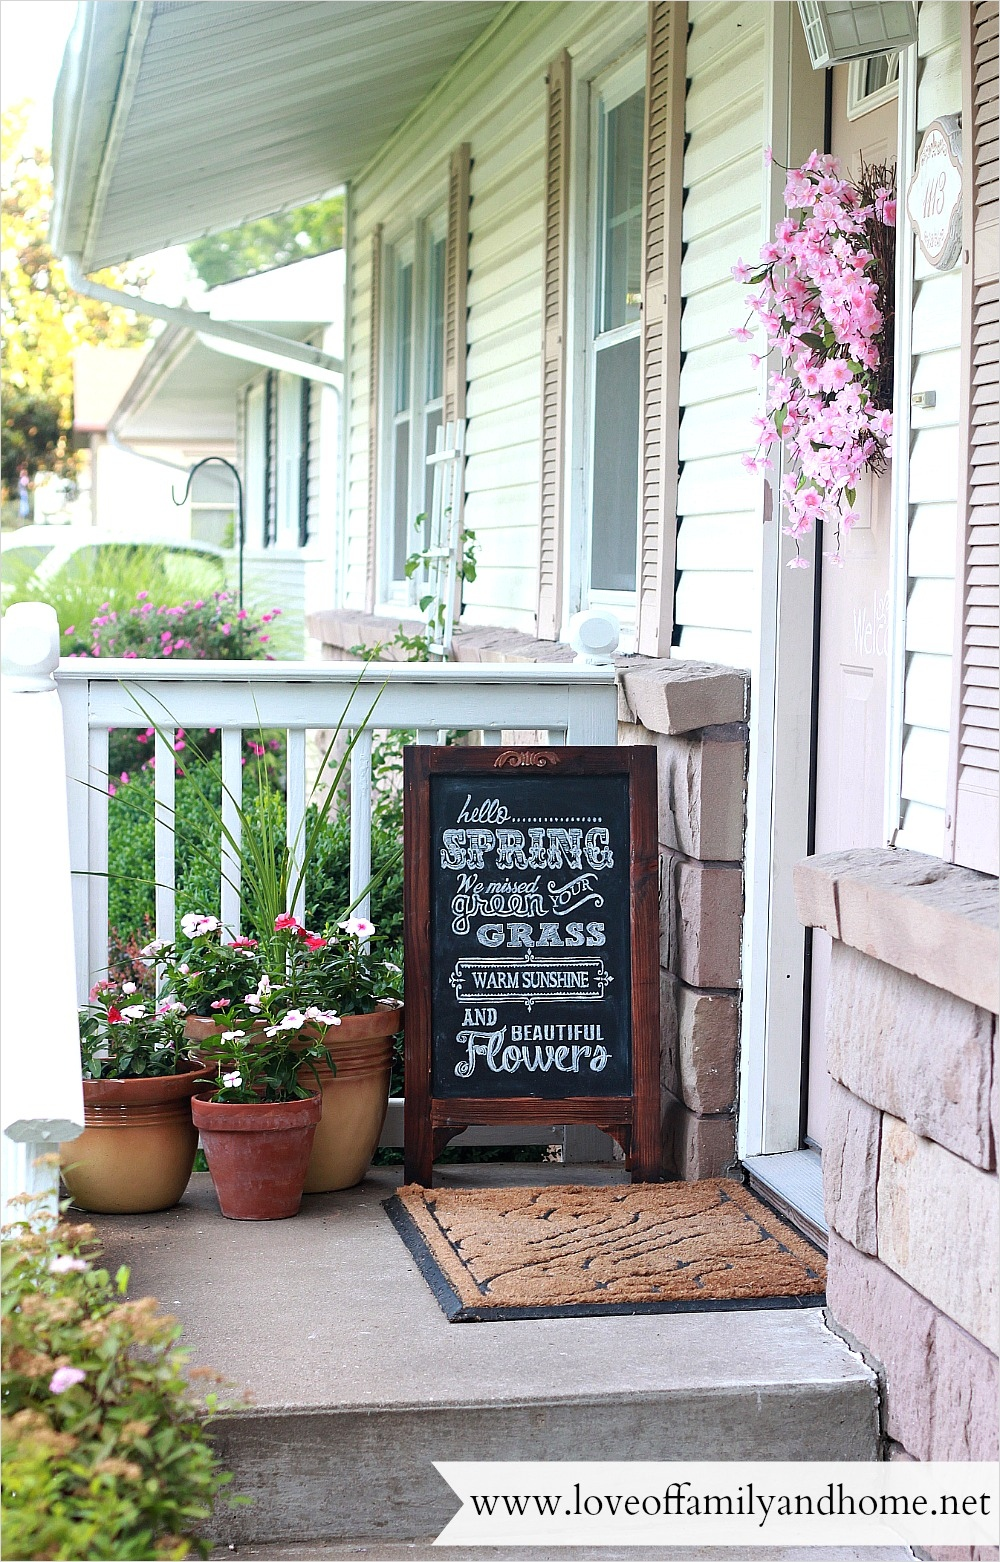 40 Beautiful Summer Porch Decorating Ideas 34 Summer Porch Makeover & Chalkboard Art Love Of Family & Home 4